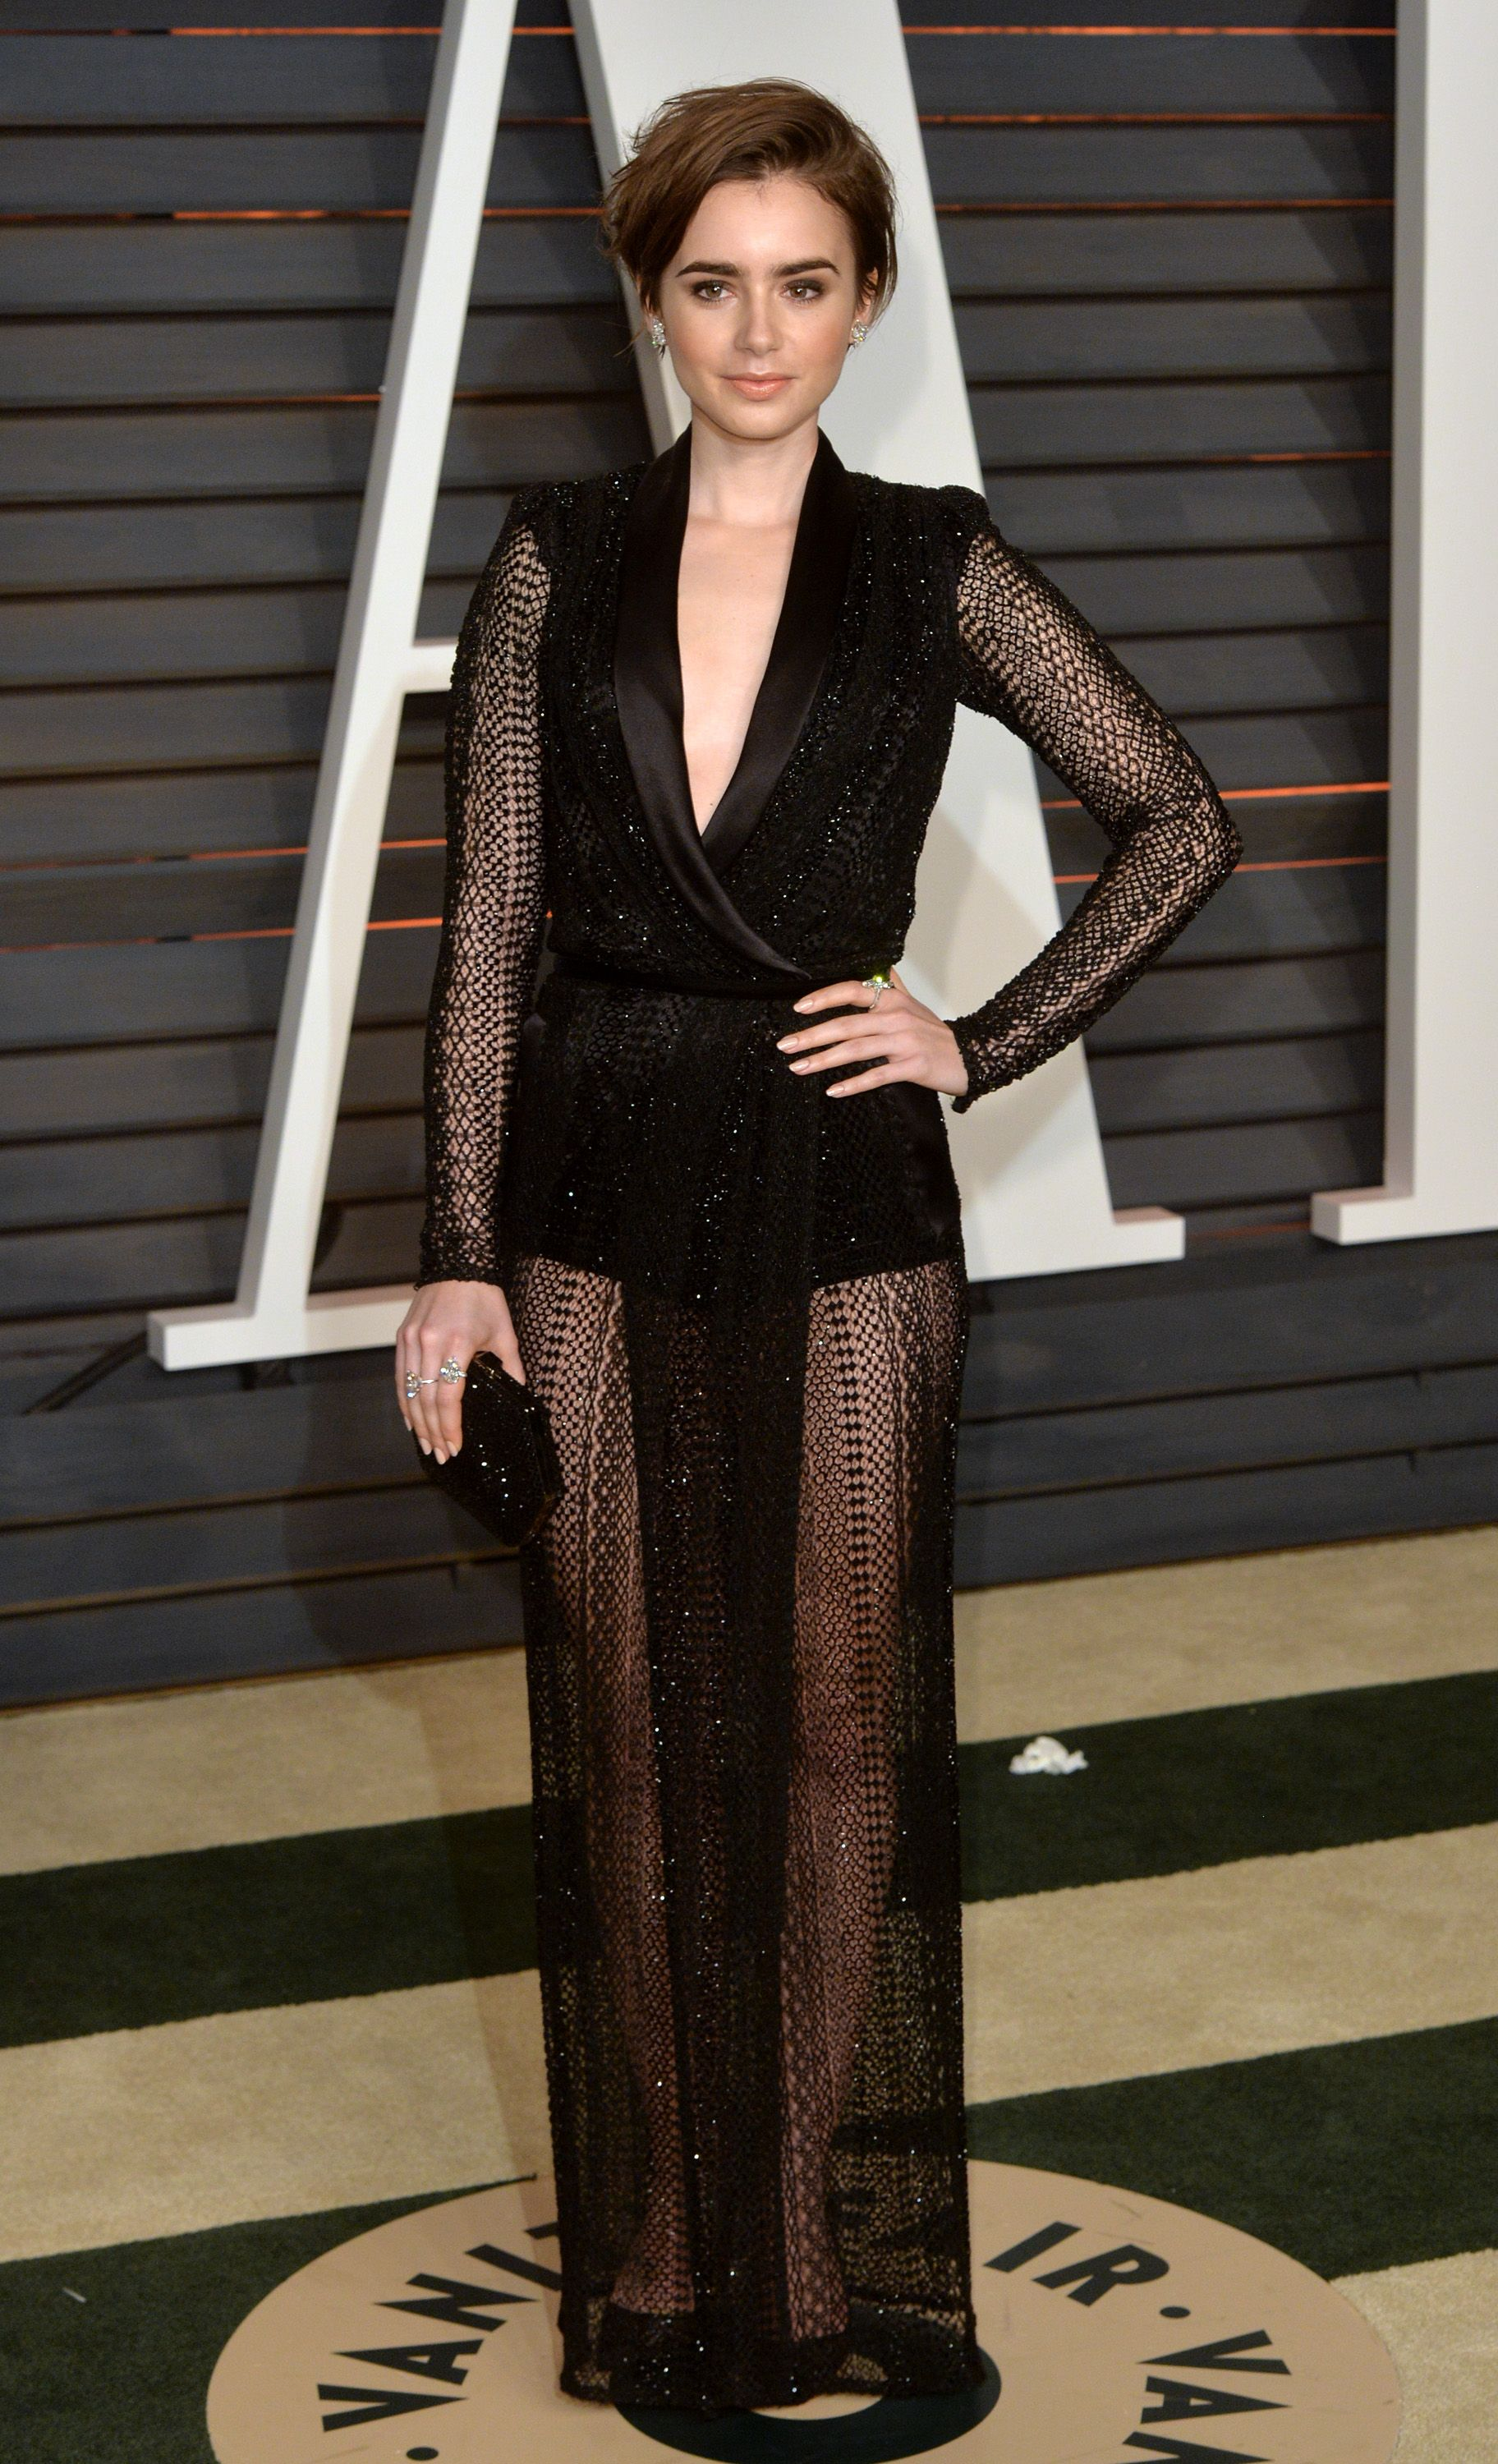 51daad22801b3c Lily Collins' Style File - Every One Of Lily Collins' Red Carpet Outfits